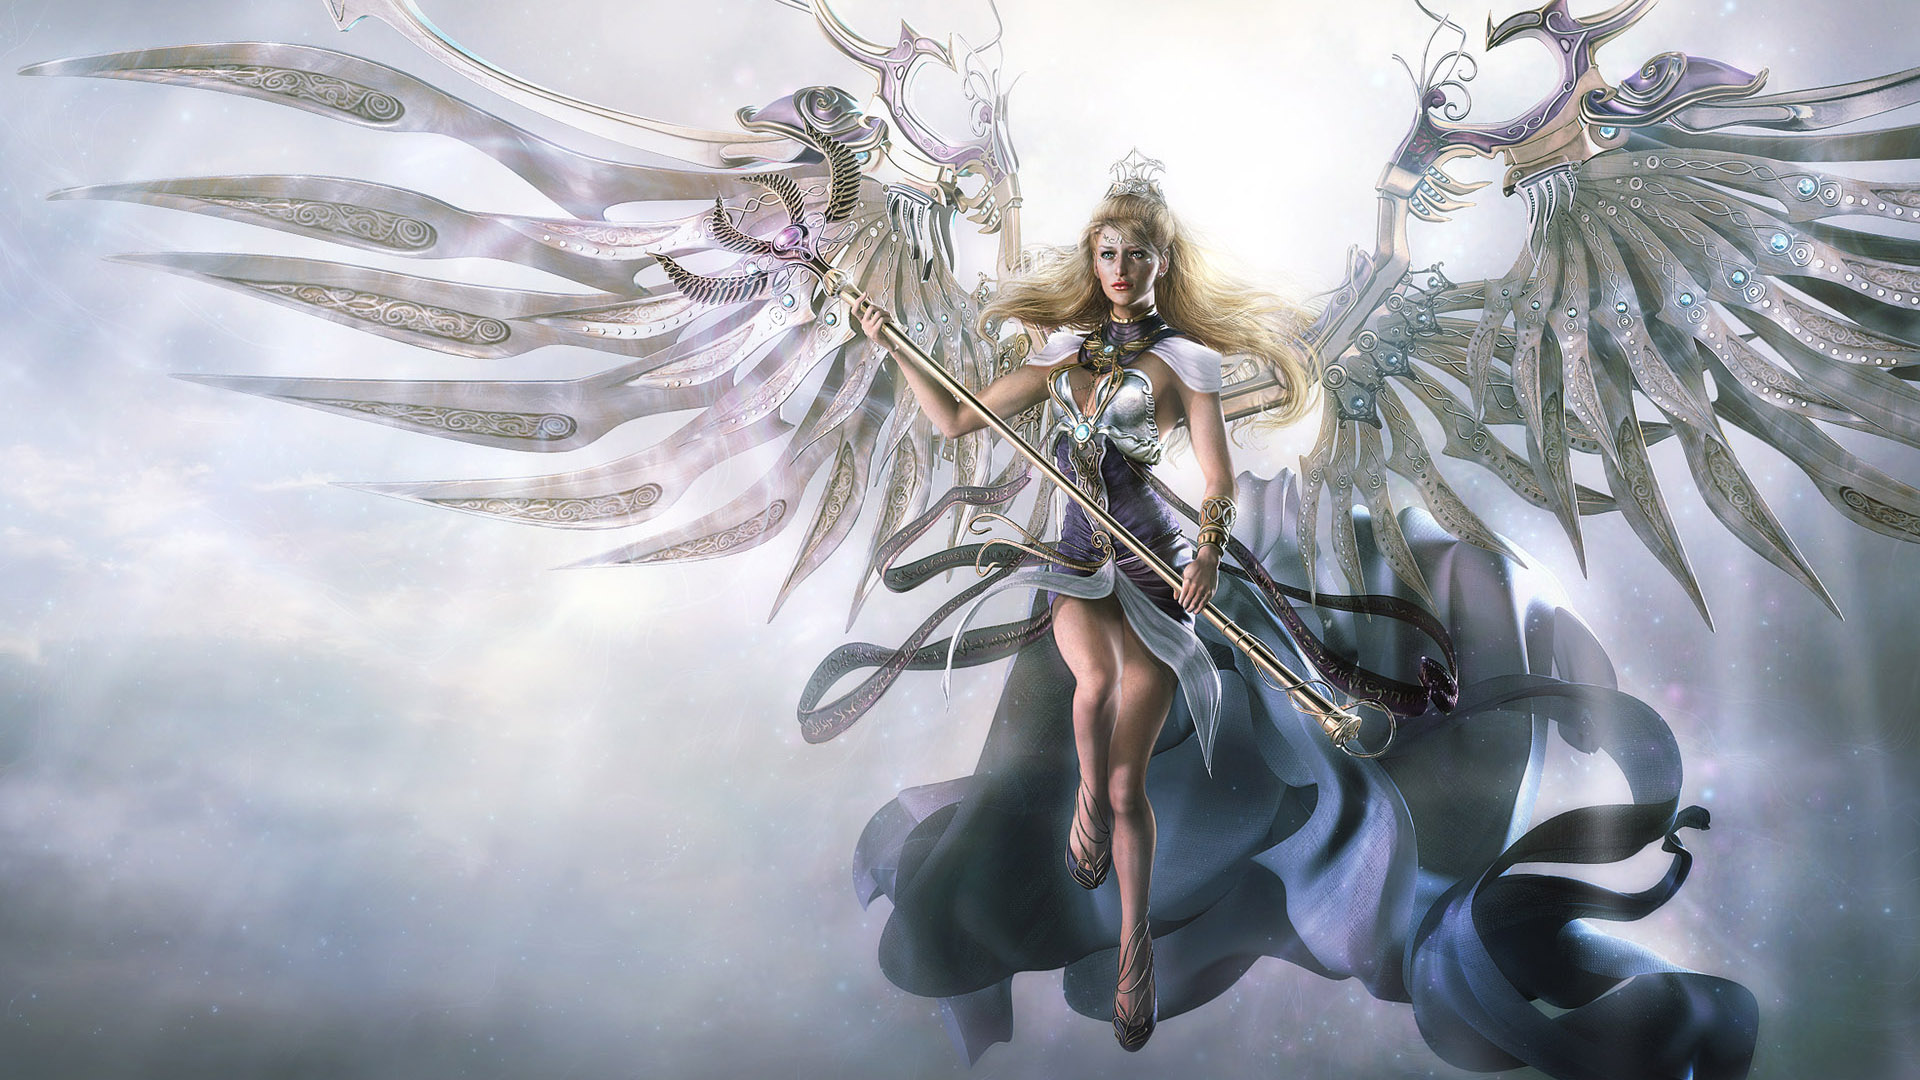 Awesome Angel 3D Fantasy Wallpaper HD Widescreen 1080p Wallpaper with 1920x1080